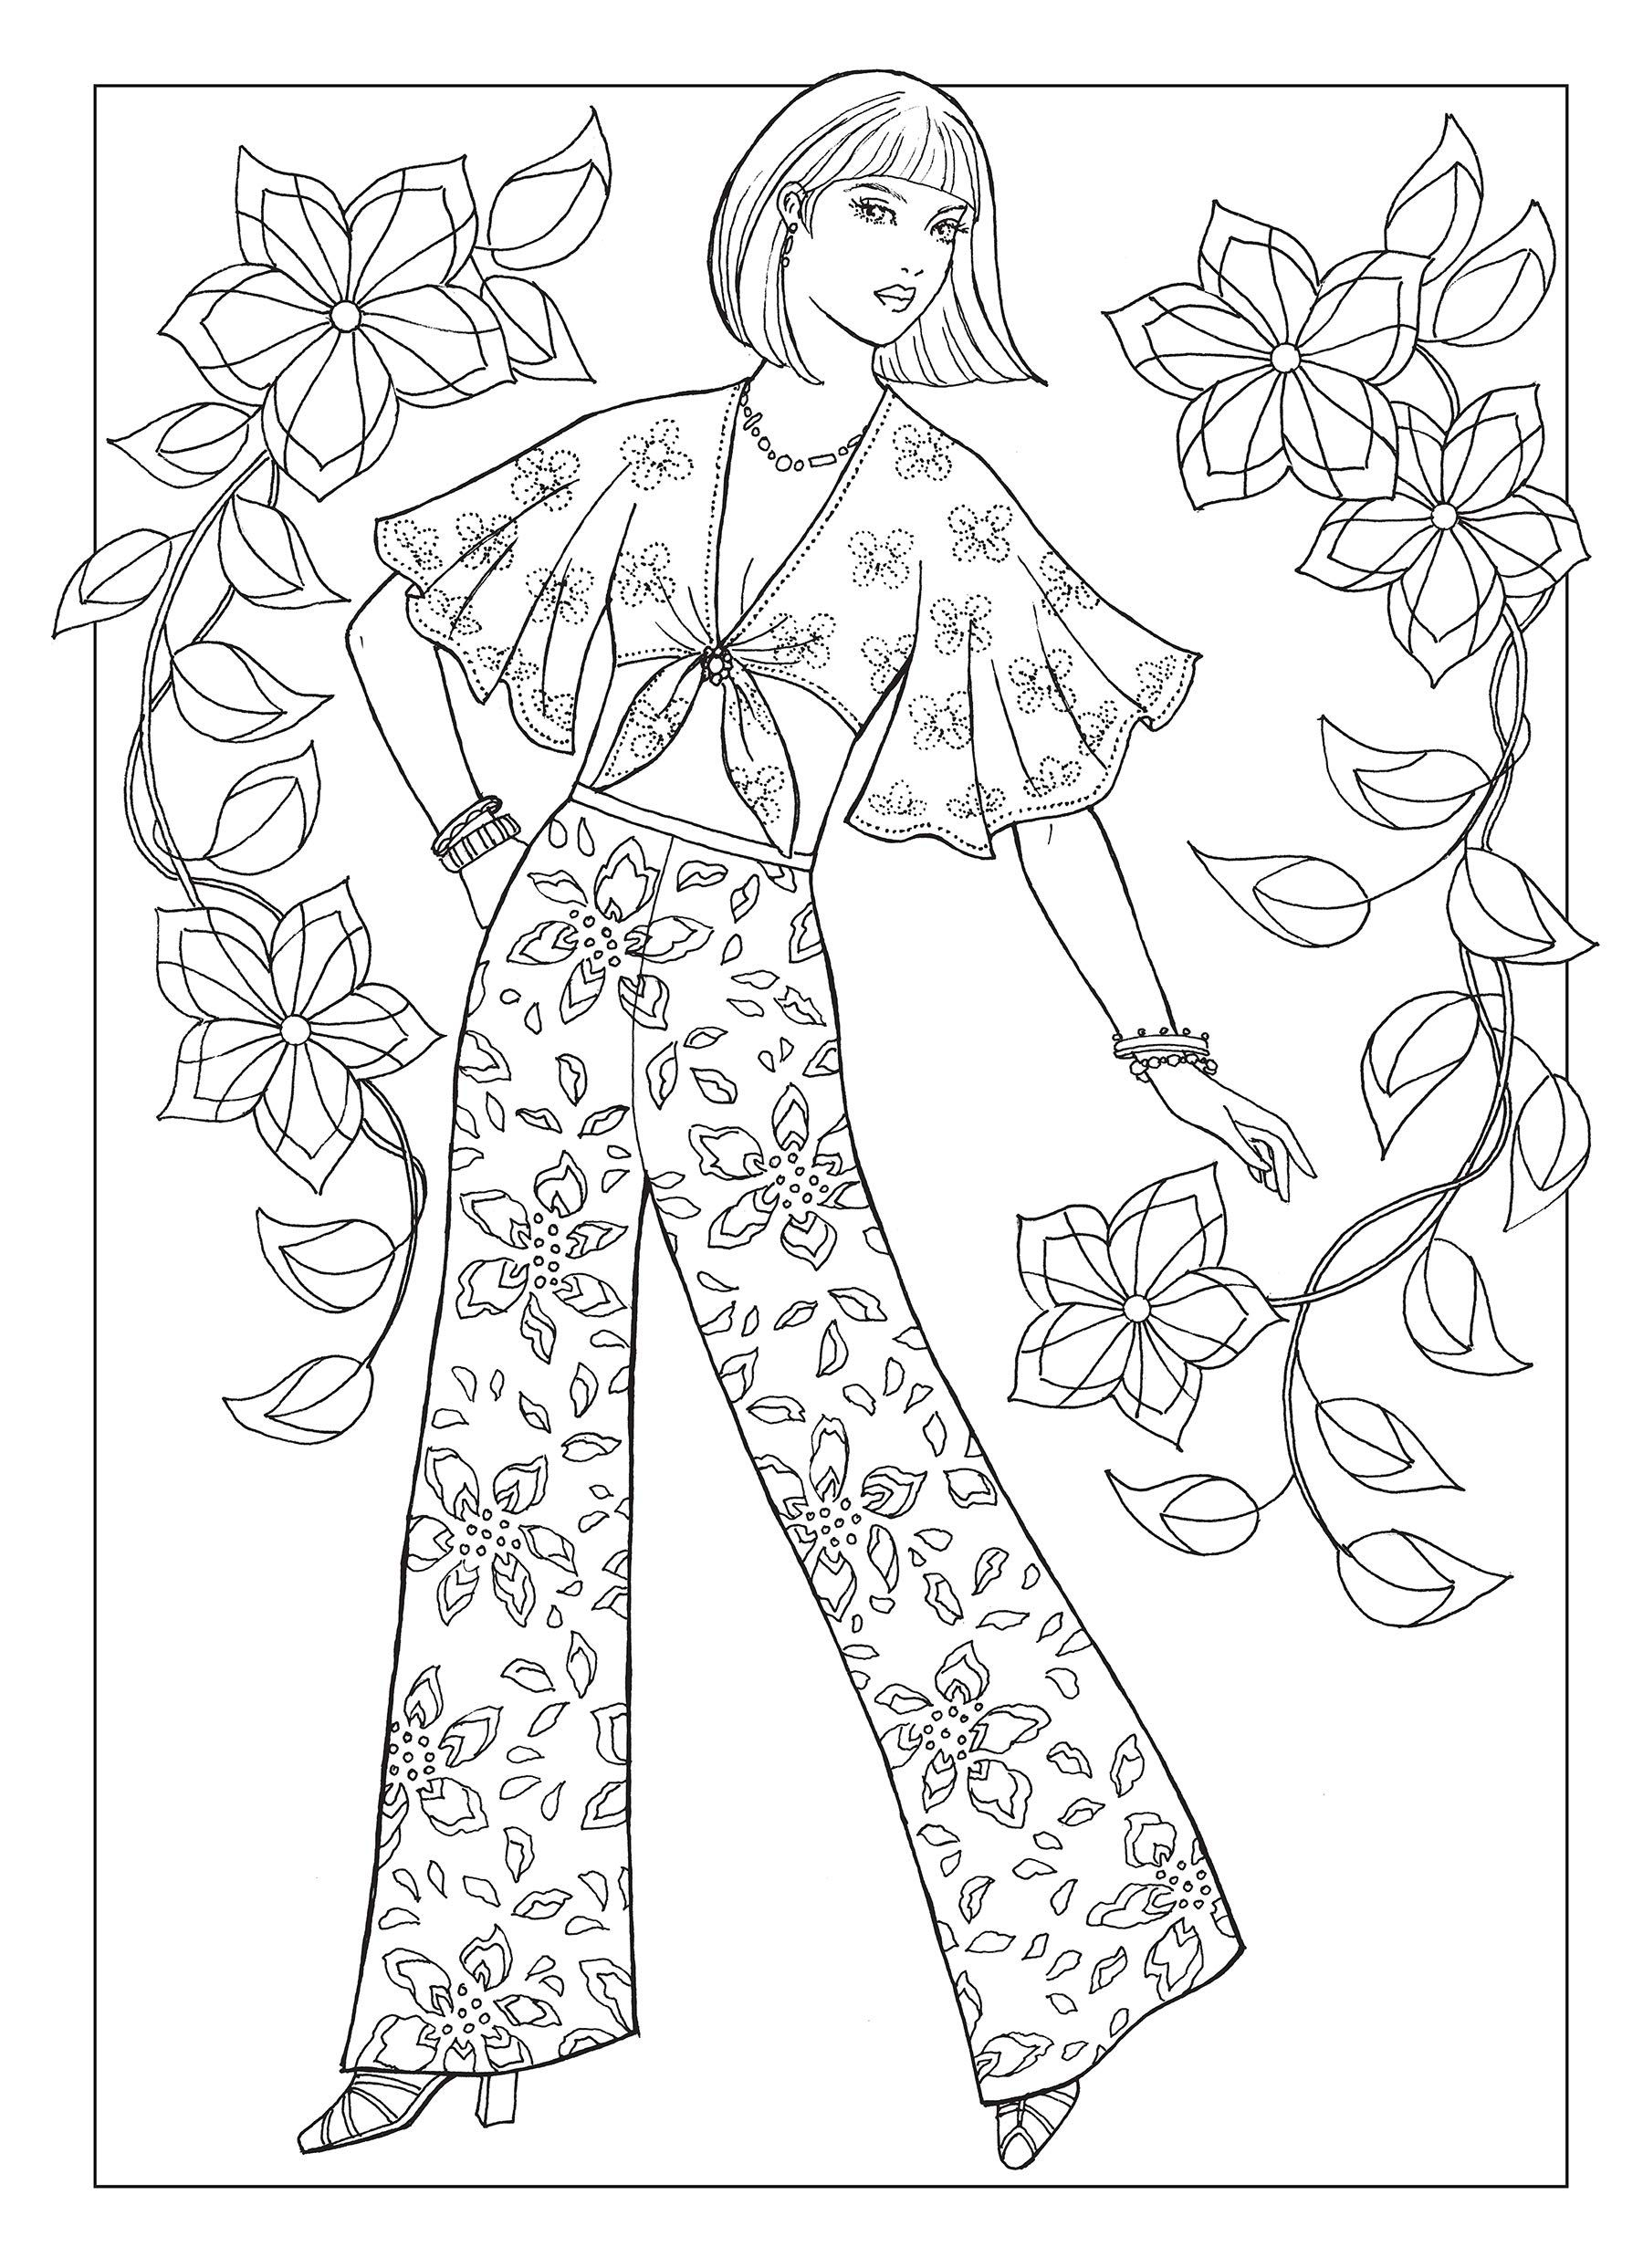 Omeletozeu Coloring Books Coloring Pages Creative